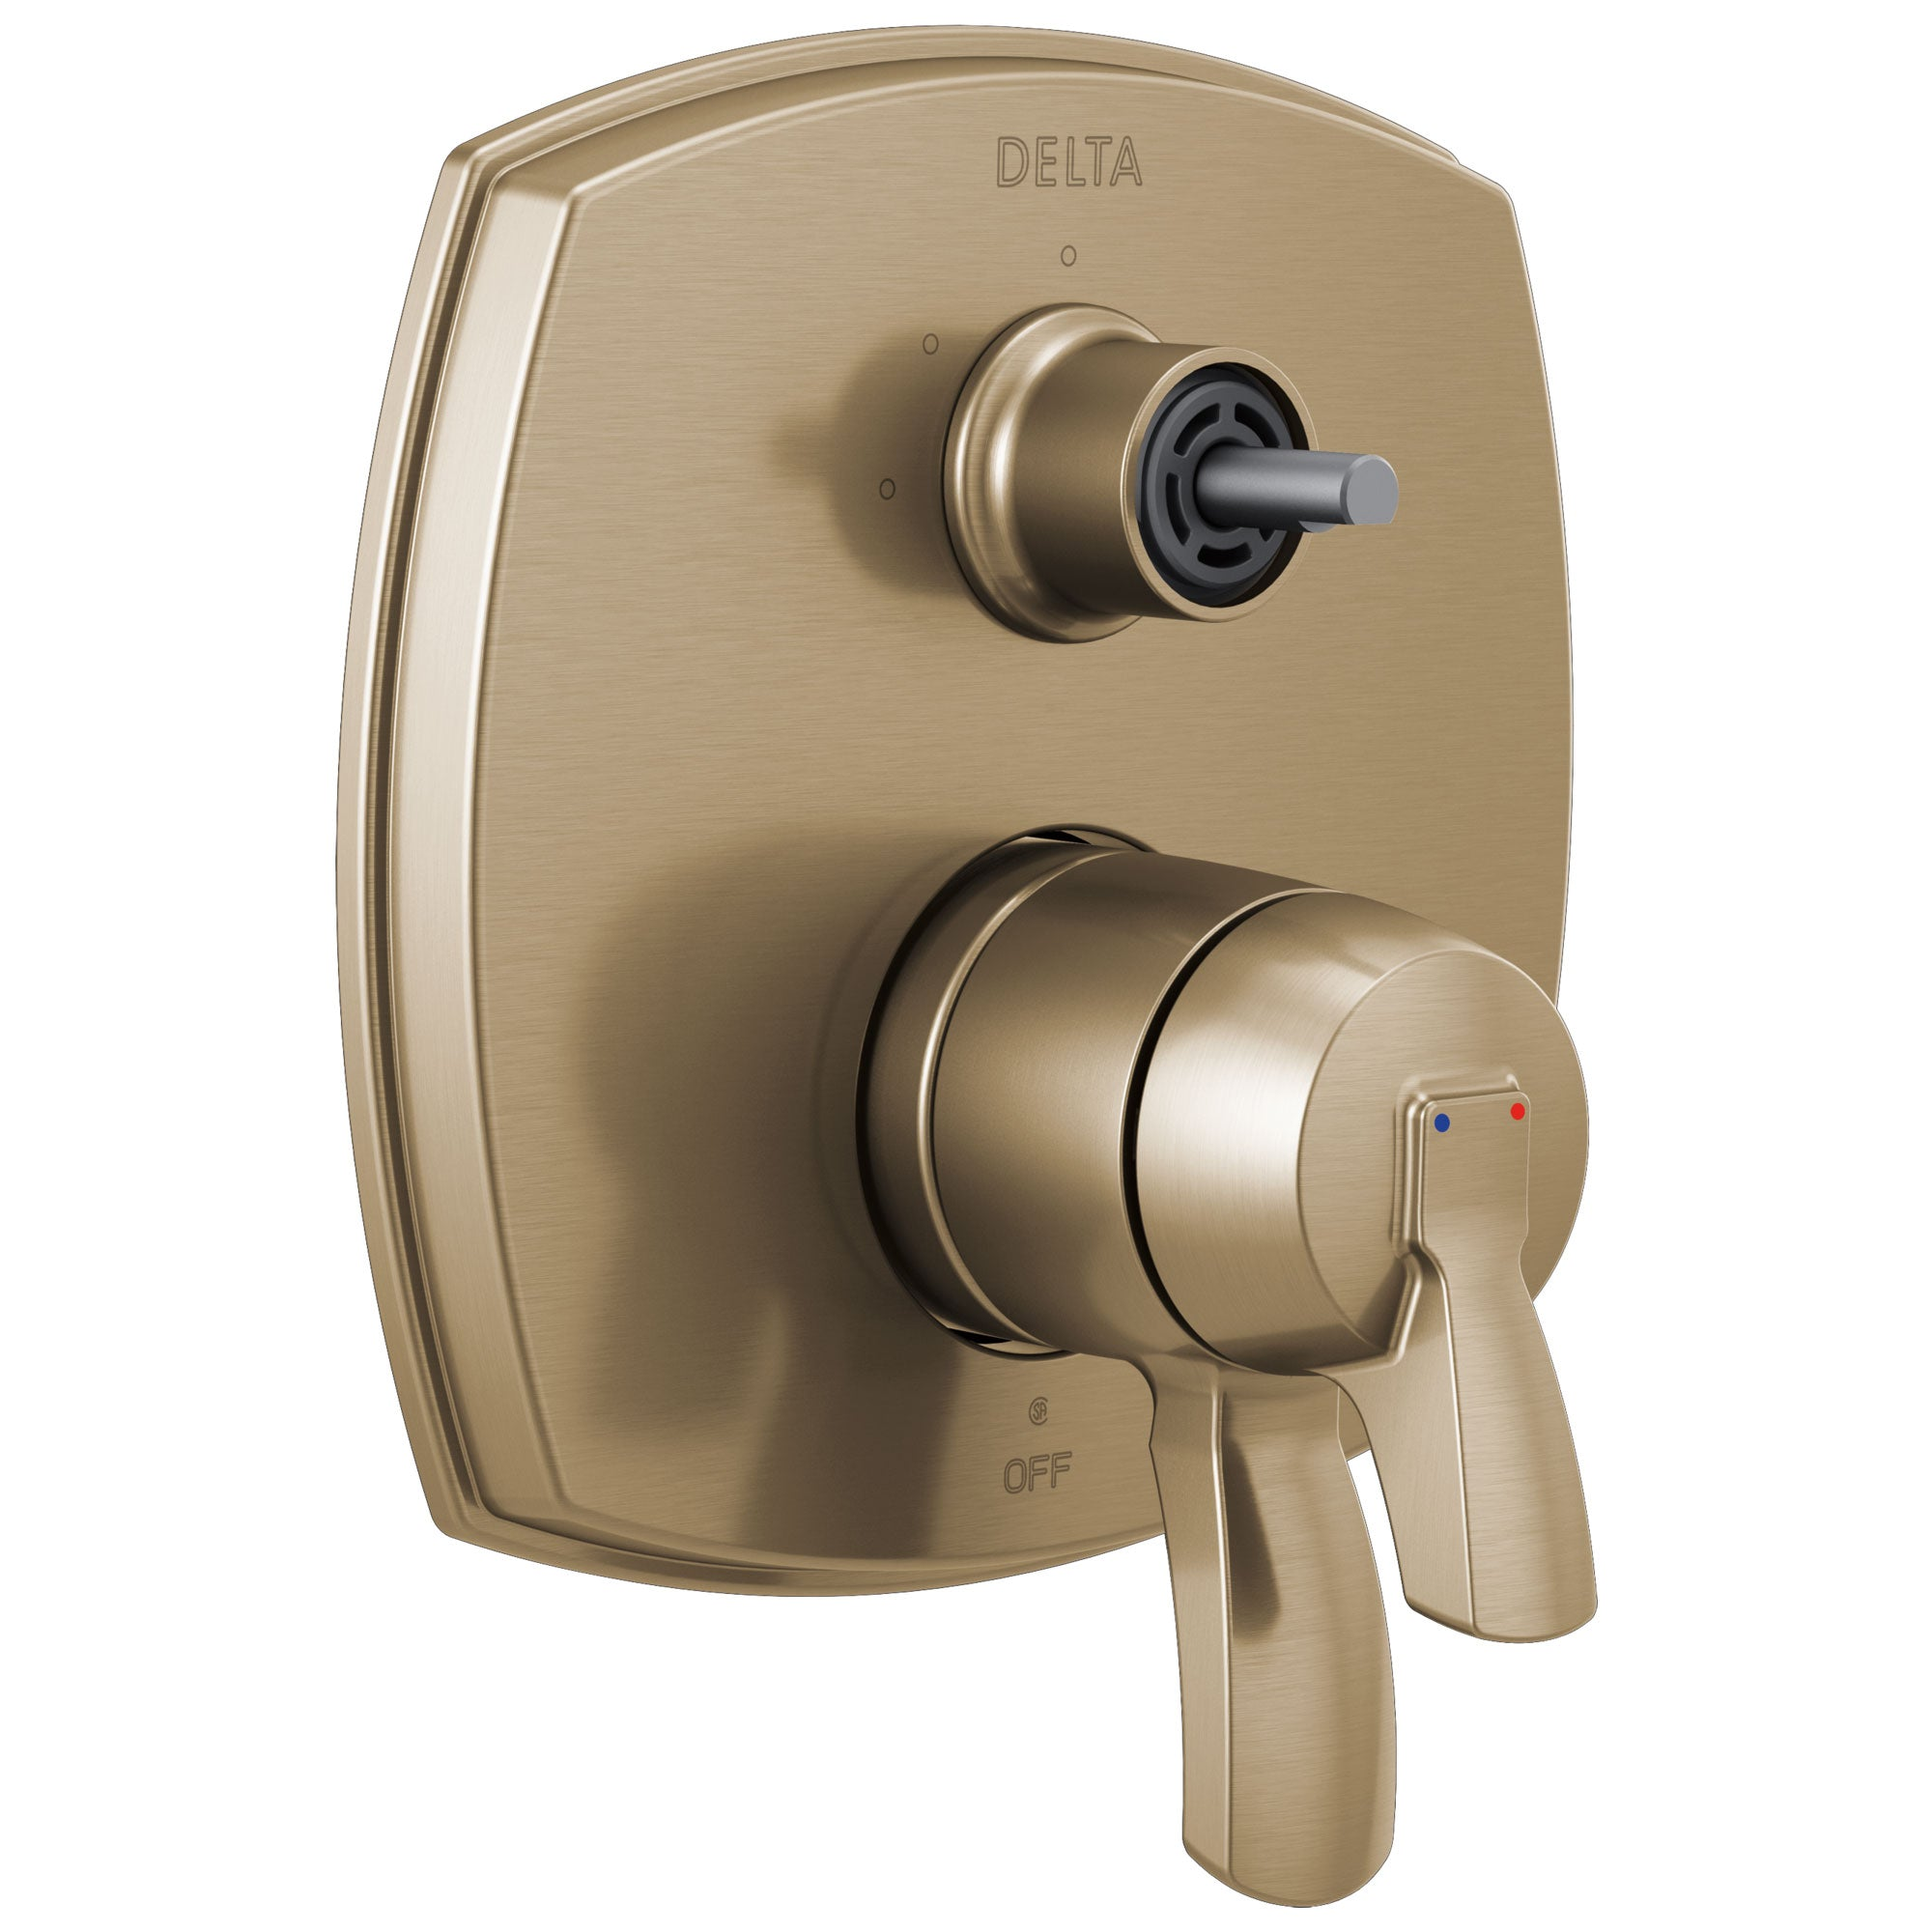 Delta Stryke Champagne Bronze Finish 17 Series Integrated 3-Function Diverter Shower Control Trim Kit Less Diverter Handle (Requires Valve) DT27876CZLHP